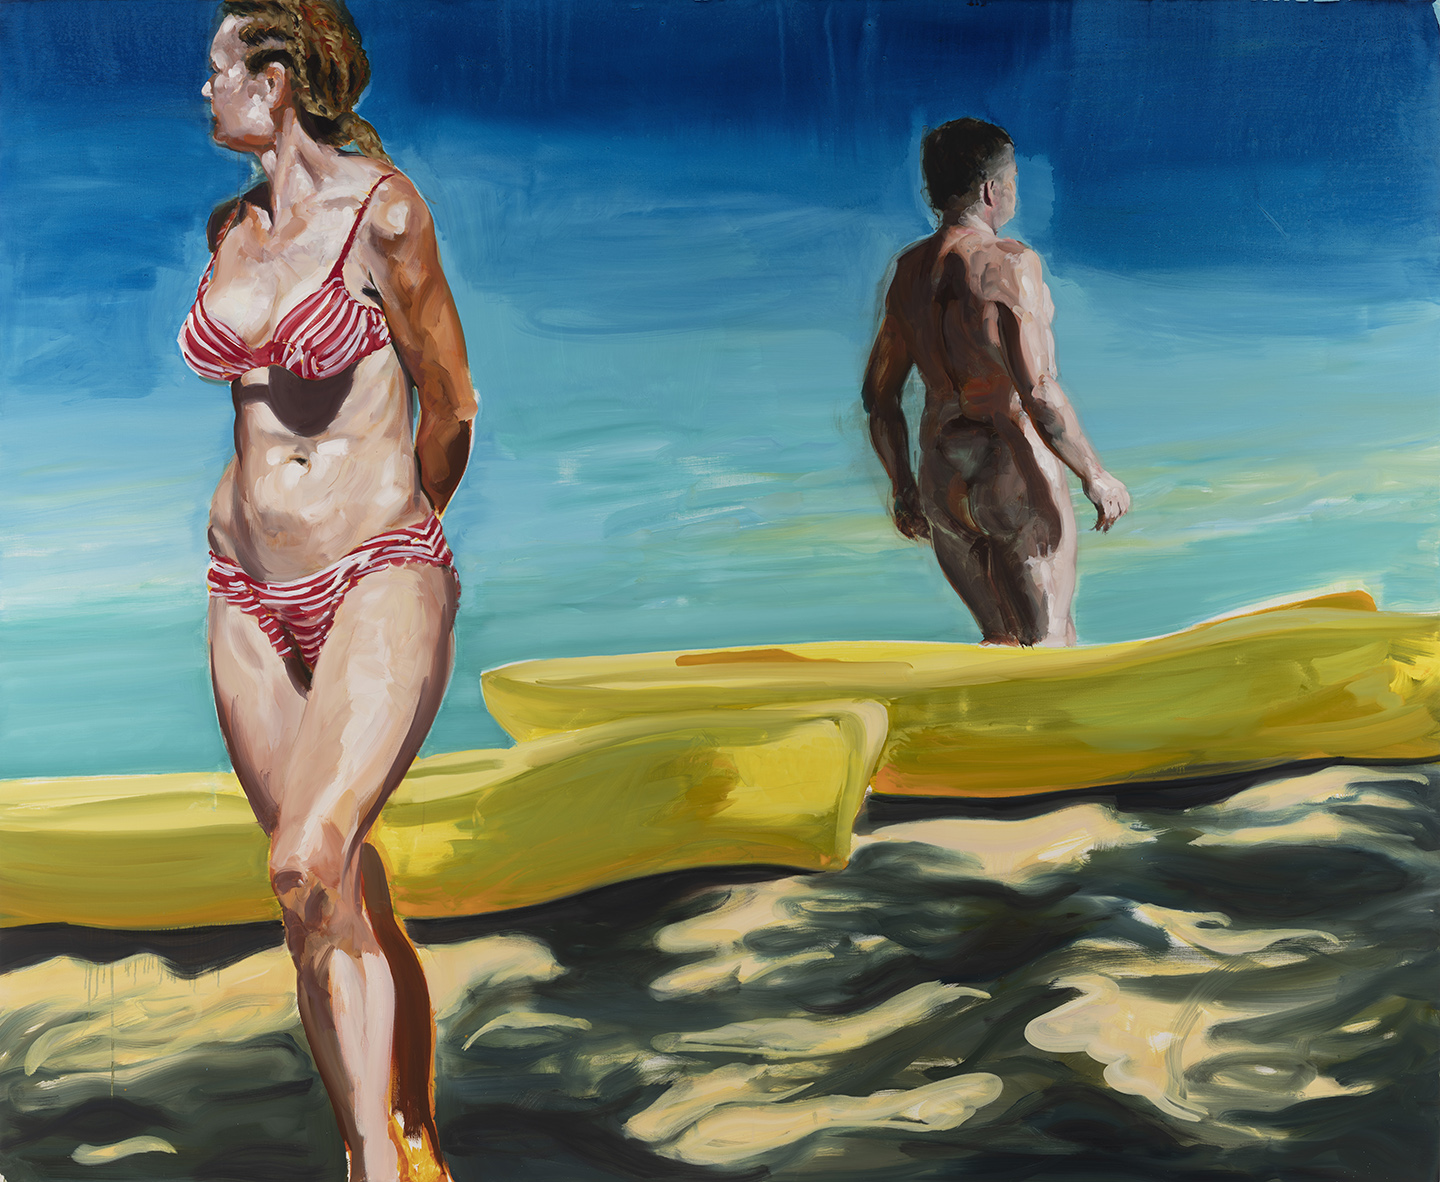 On the Beach 2019. Oil on Linen. 80 x 98 inches